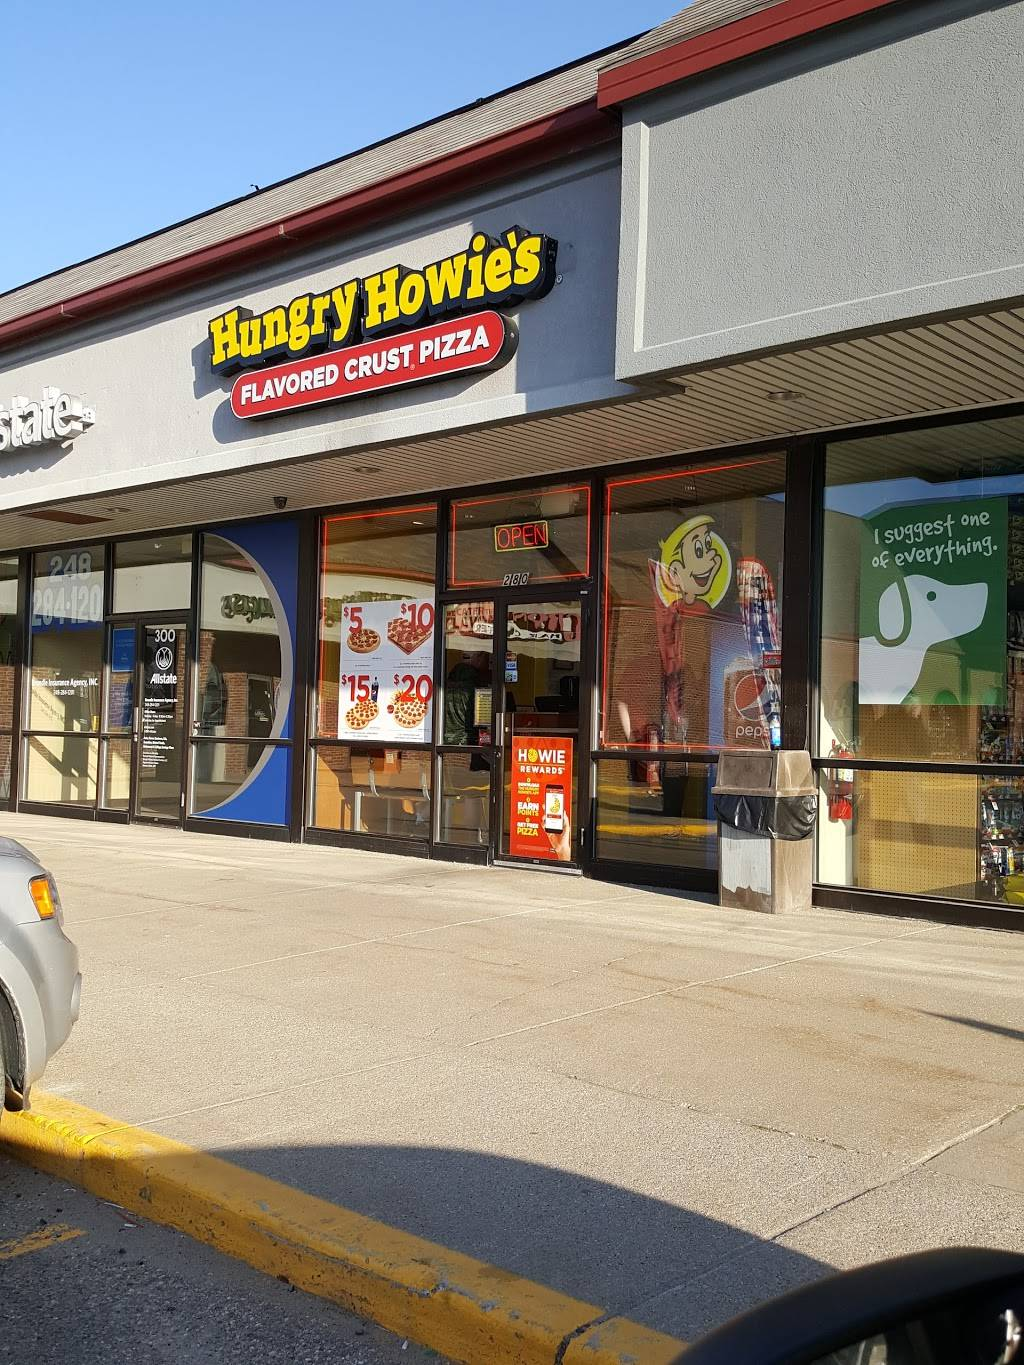 Hungry Howies Pizza   meal delivery   280 N Ortonville Rd, Ortonville, MI 48462, USA   2486275255 OR +1 248-627-5255